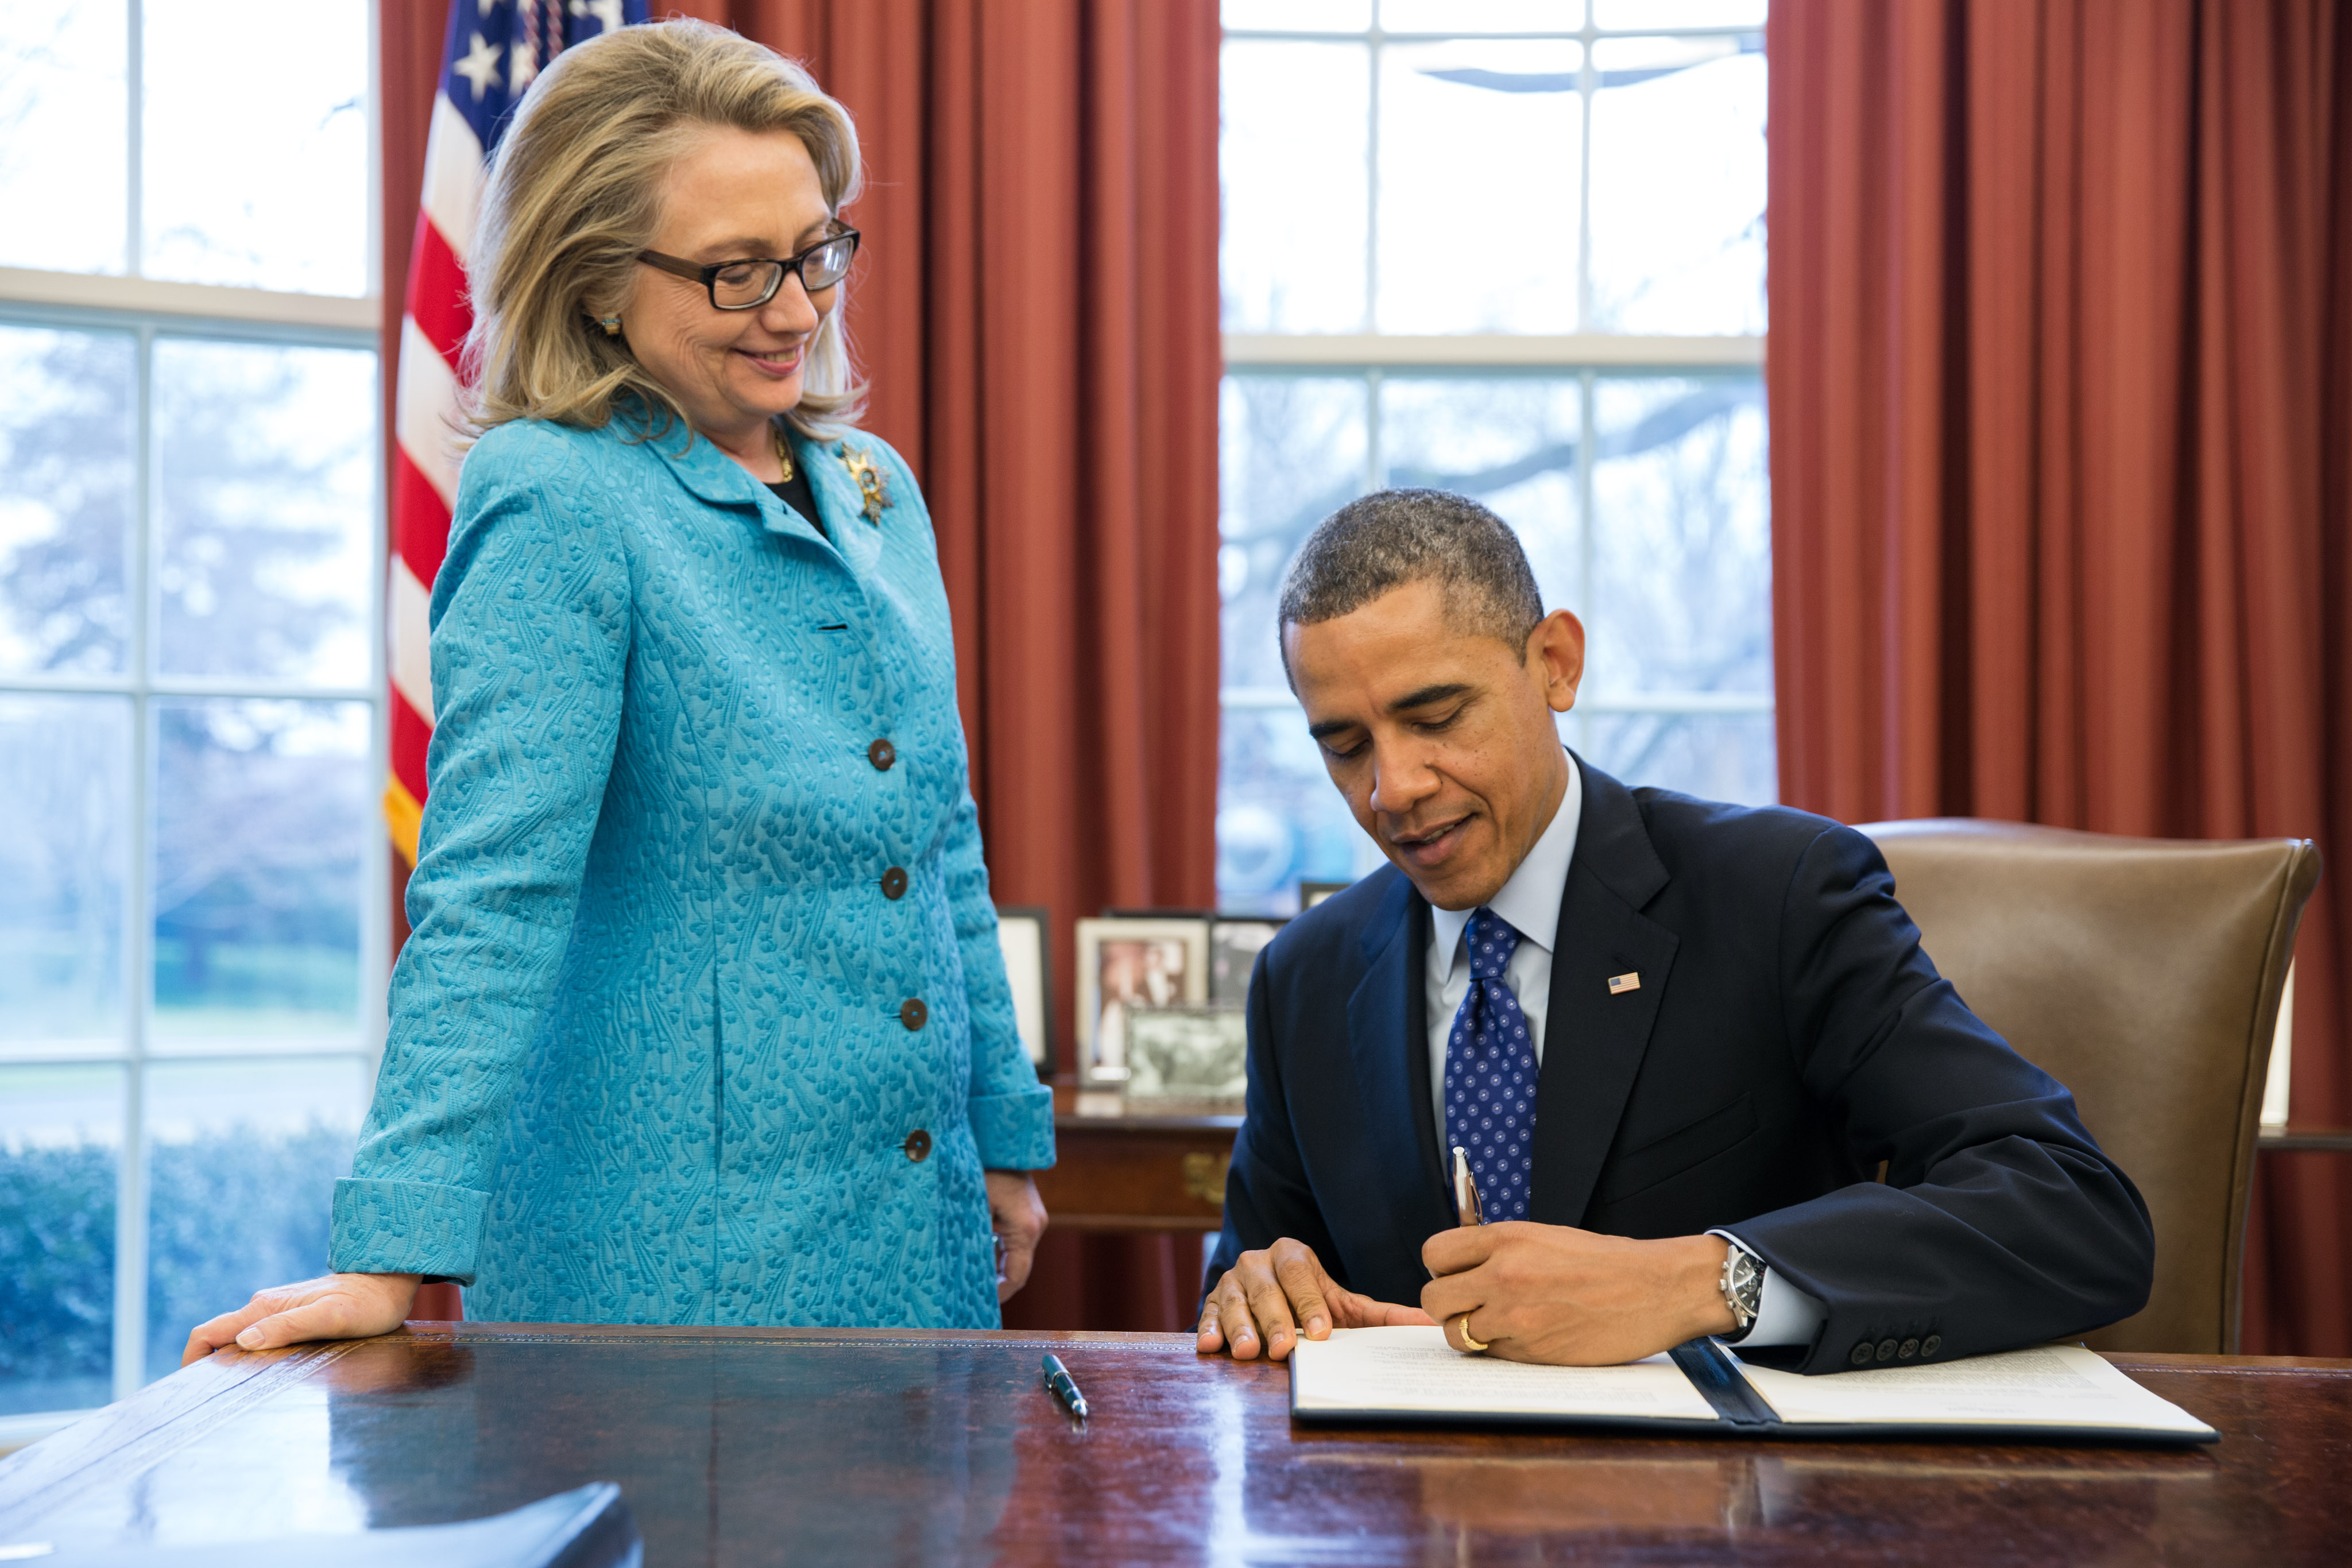 Secretary of State Hillary Clinton watches as President Obama signs a Presidential memorandum (January 20, 2013)